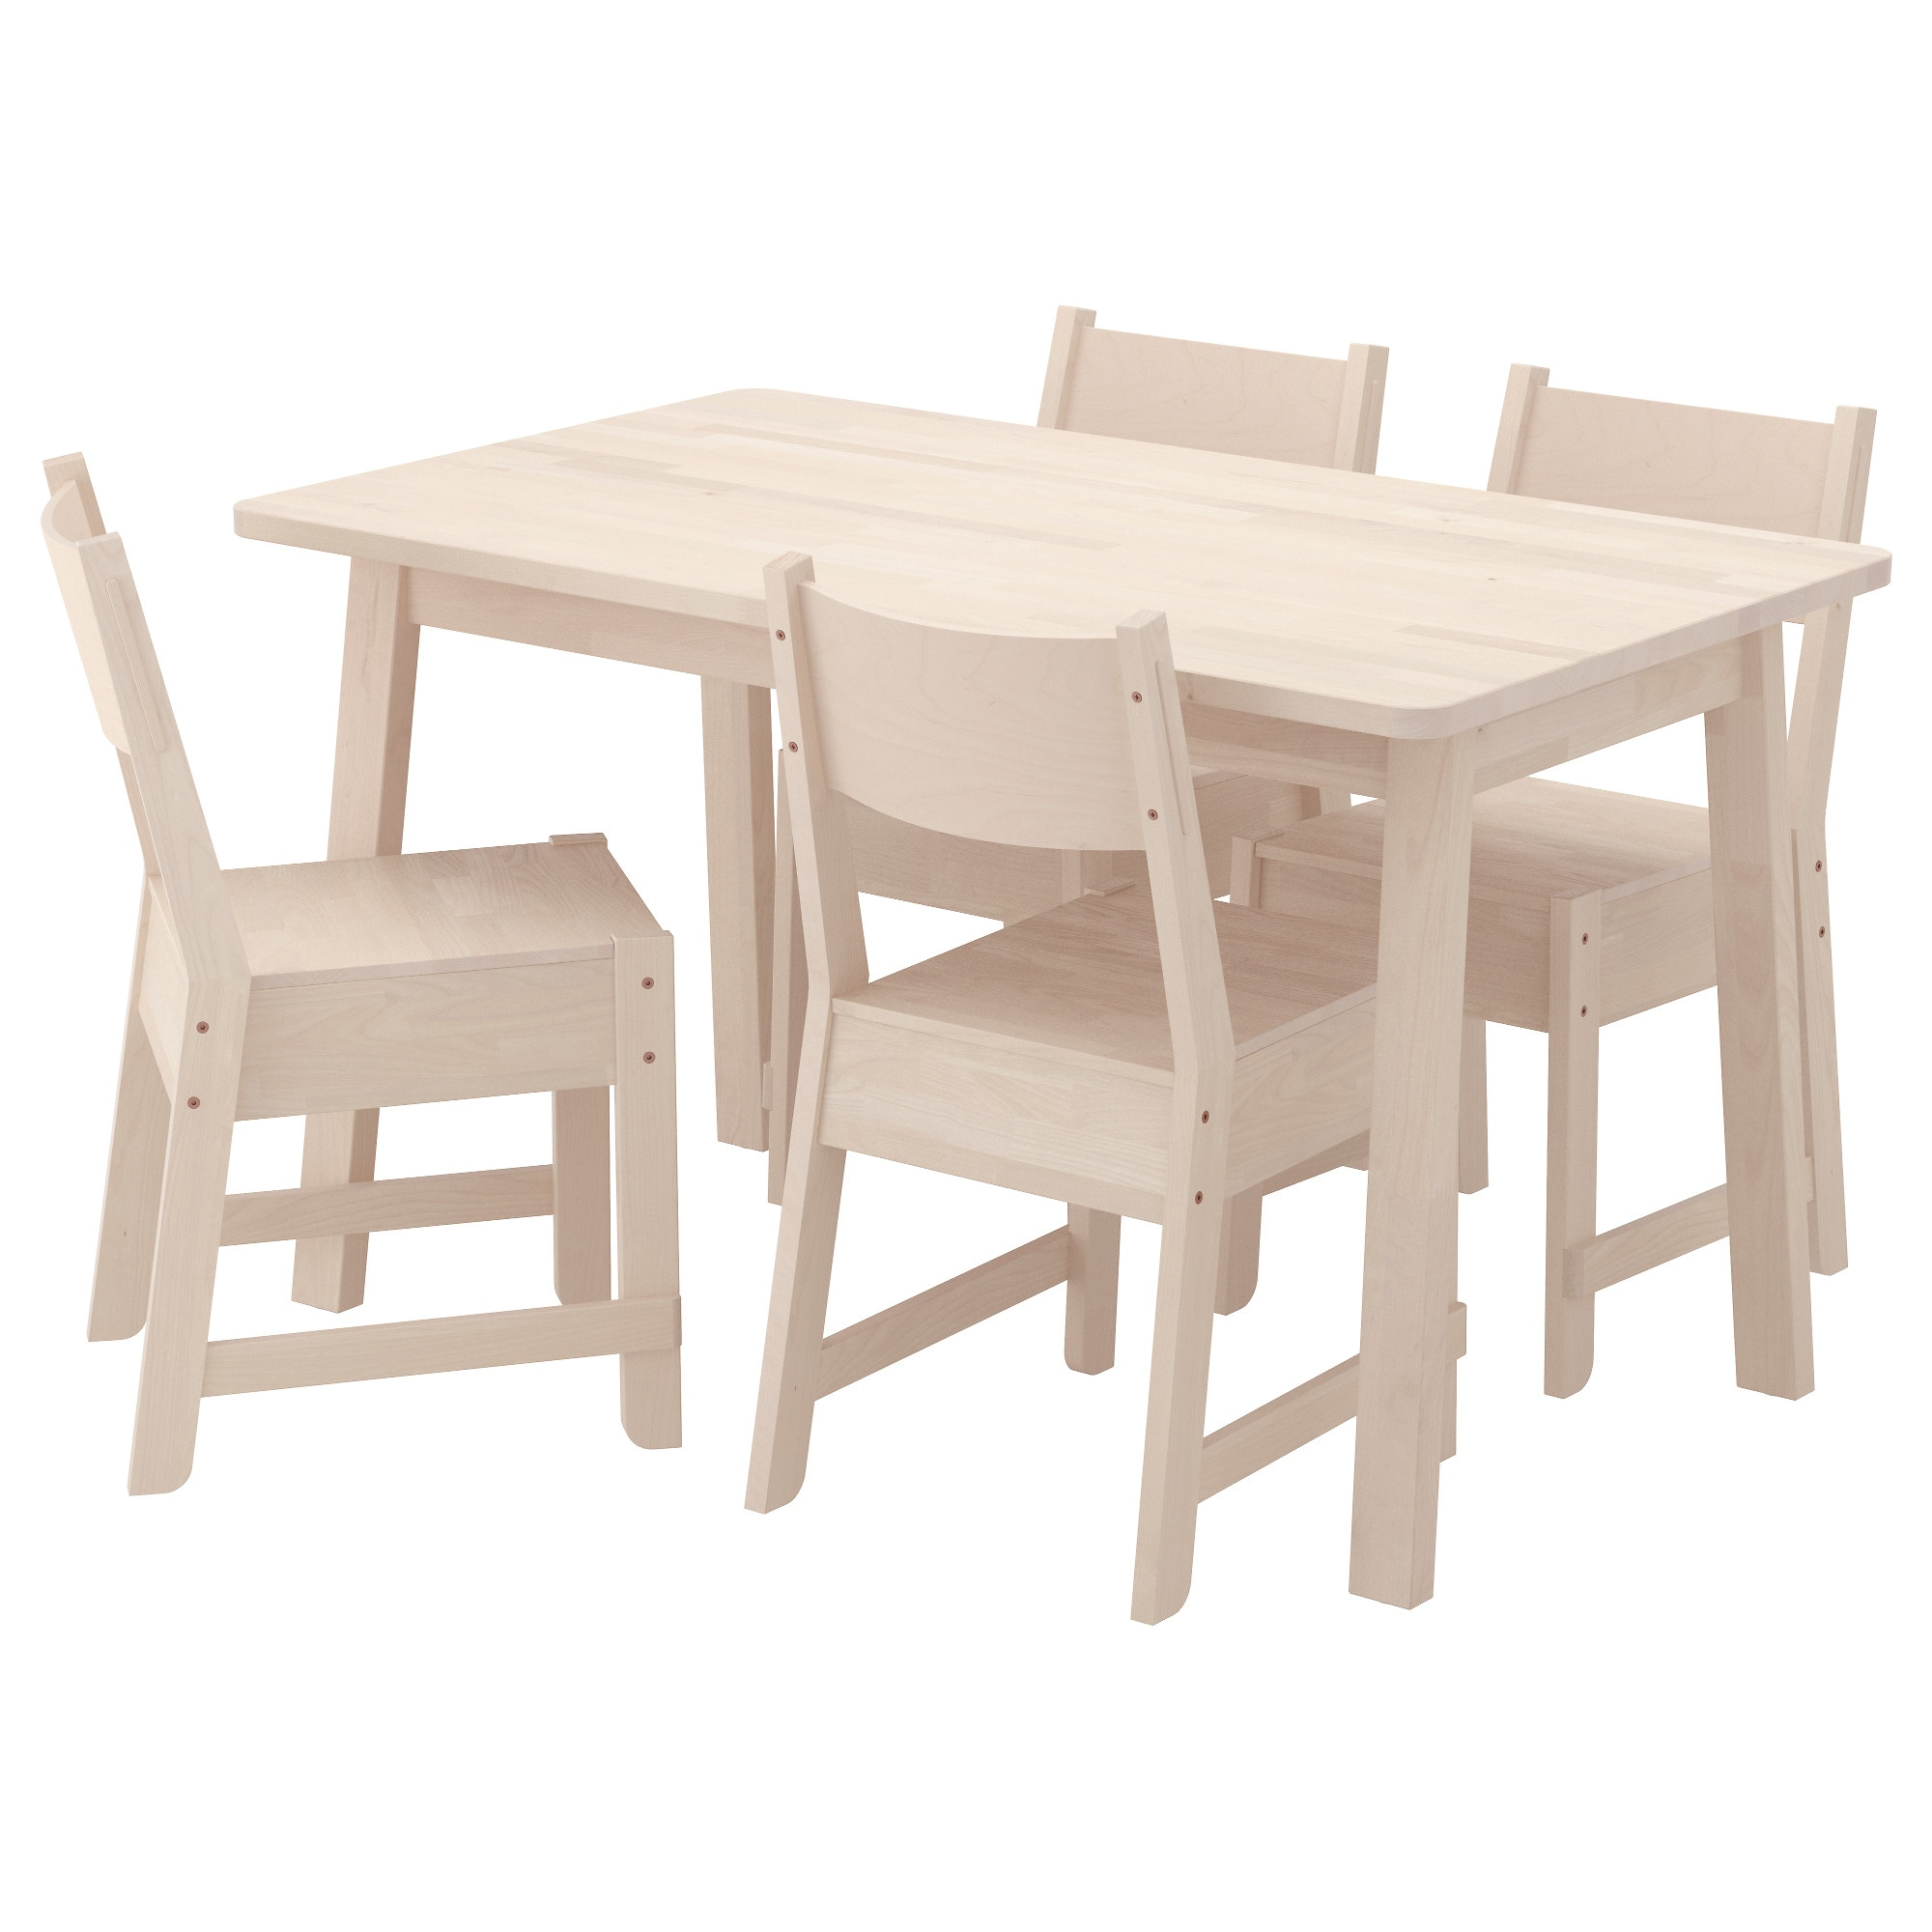 NORR…KER NORR…KER Table and 4 chairs IKEA